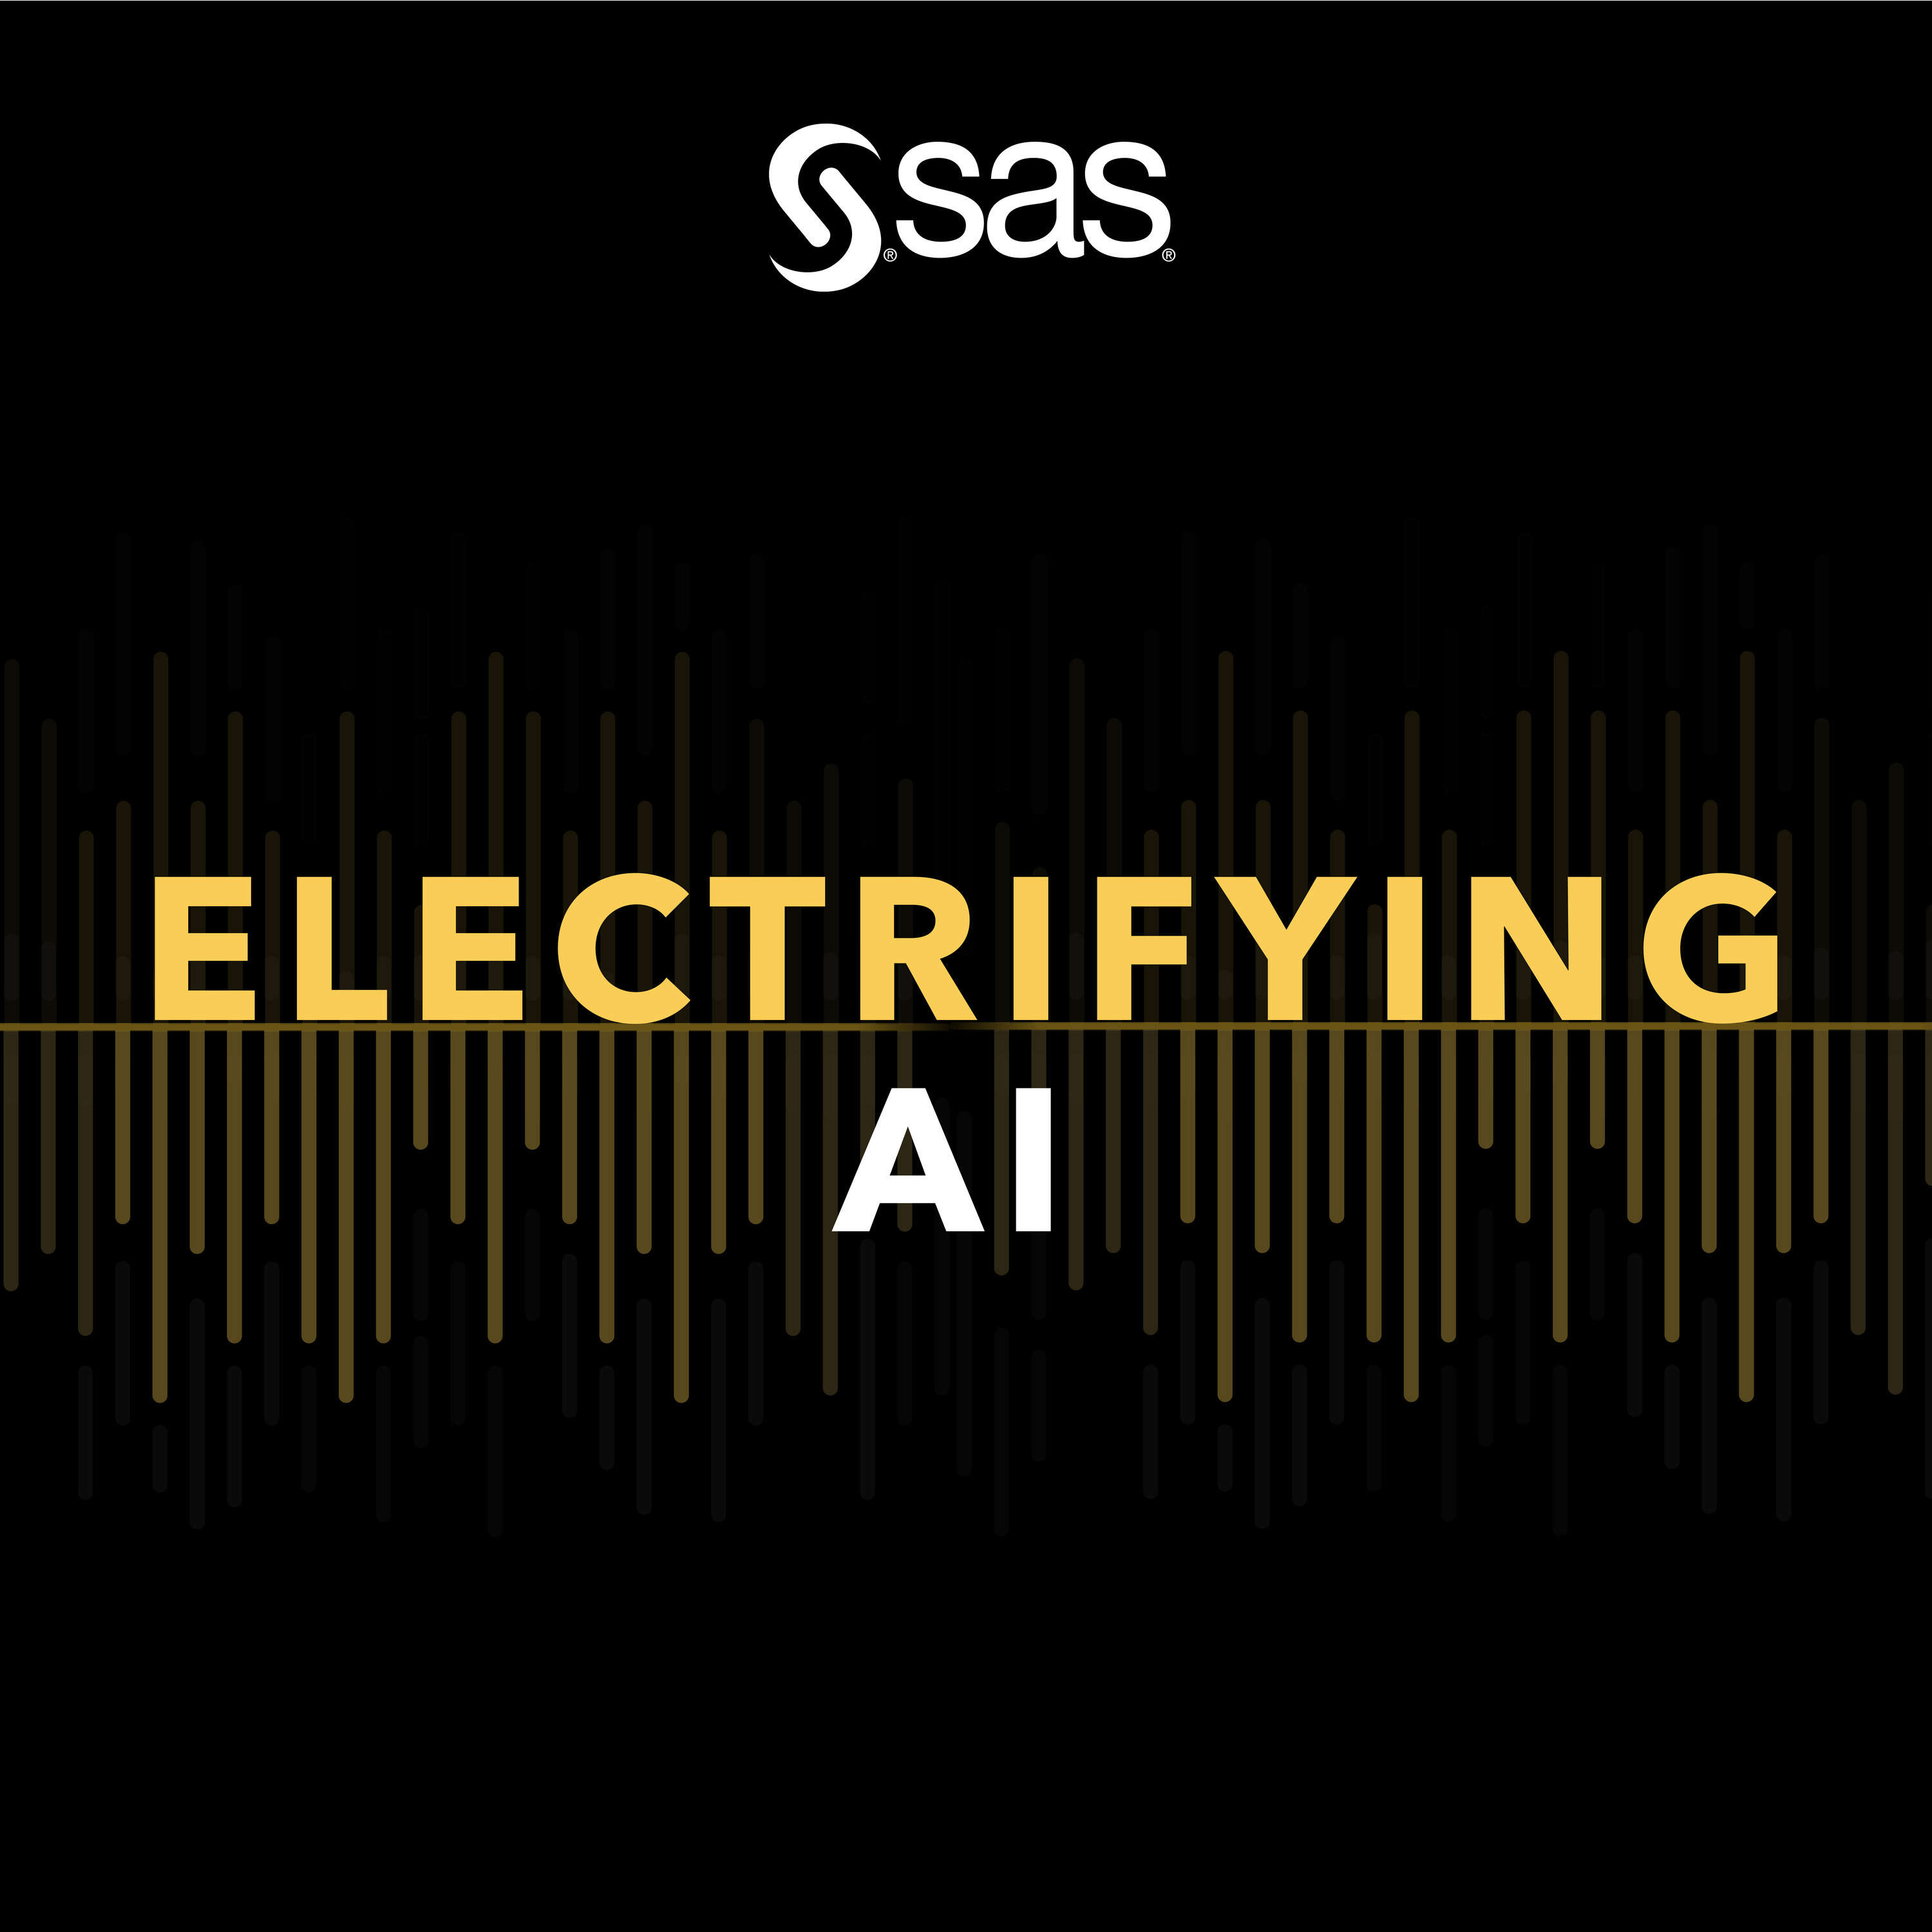 Electrifying AI: An equitable energy transition